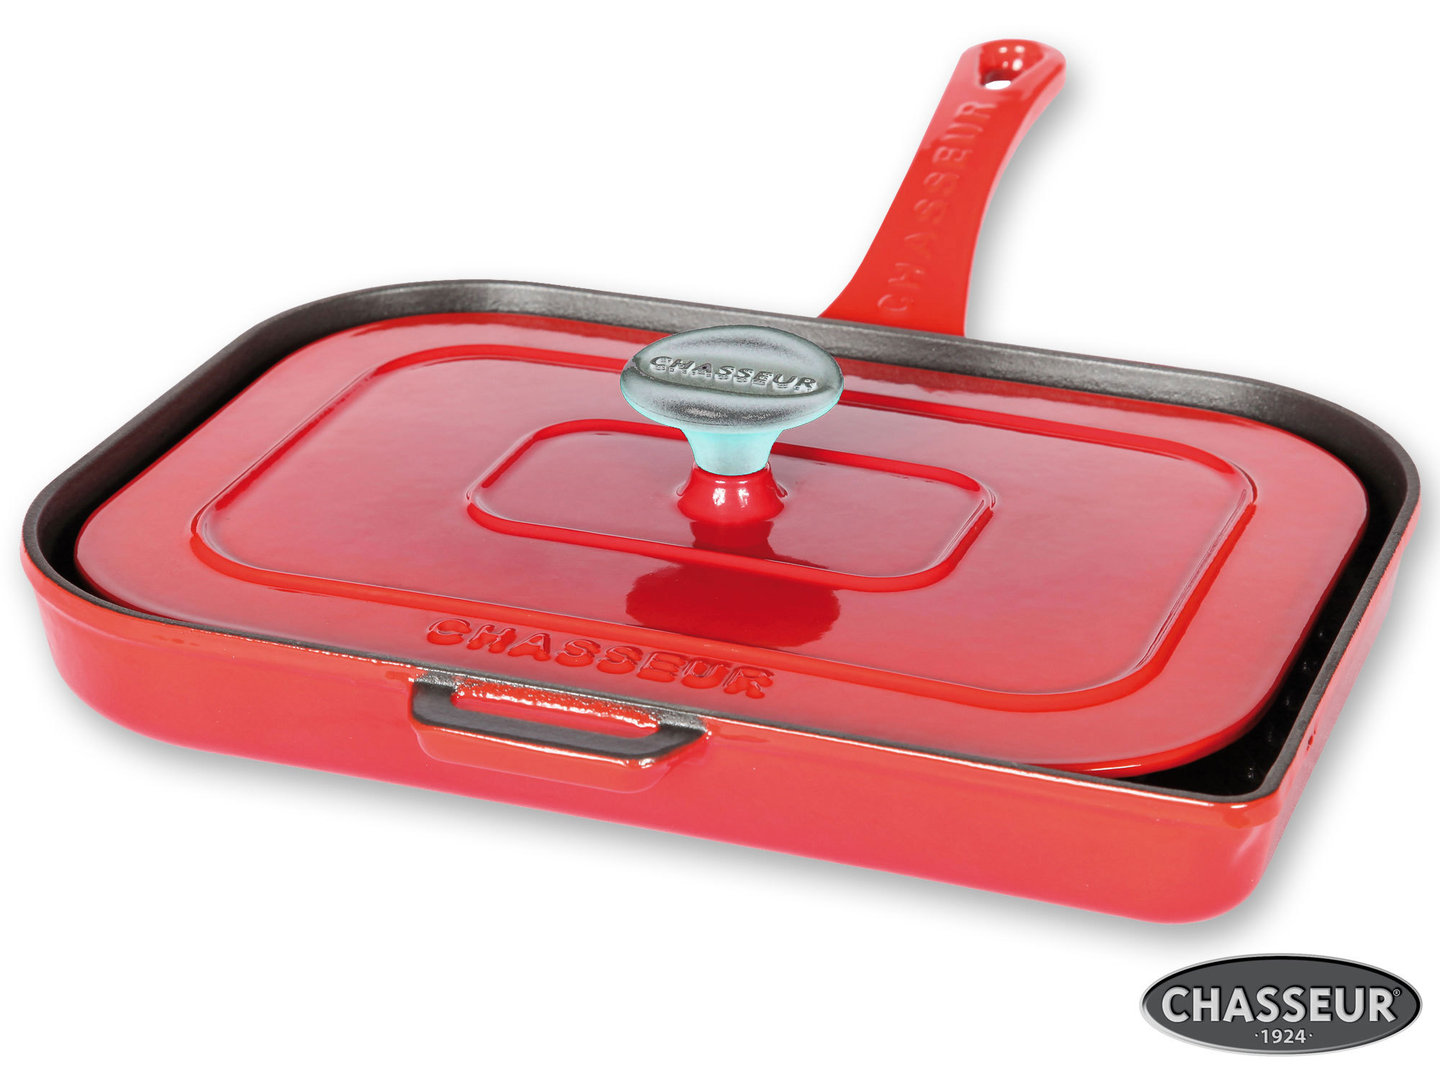 CHASSEUR cast iron double grillpan Panini pan ruby-red enamel